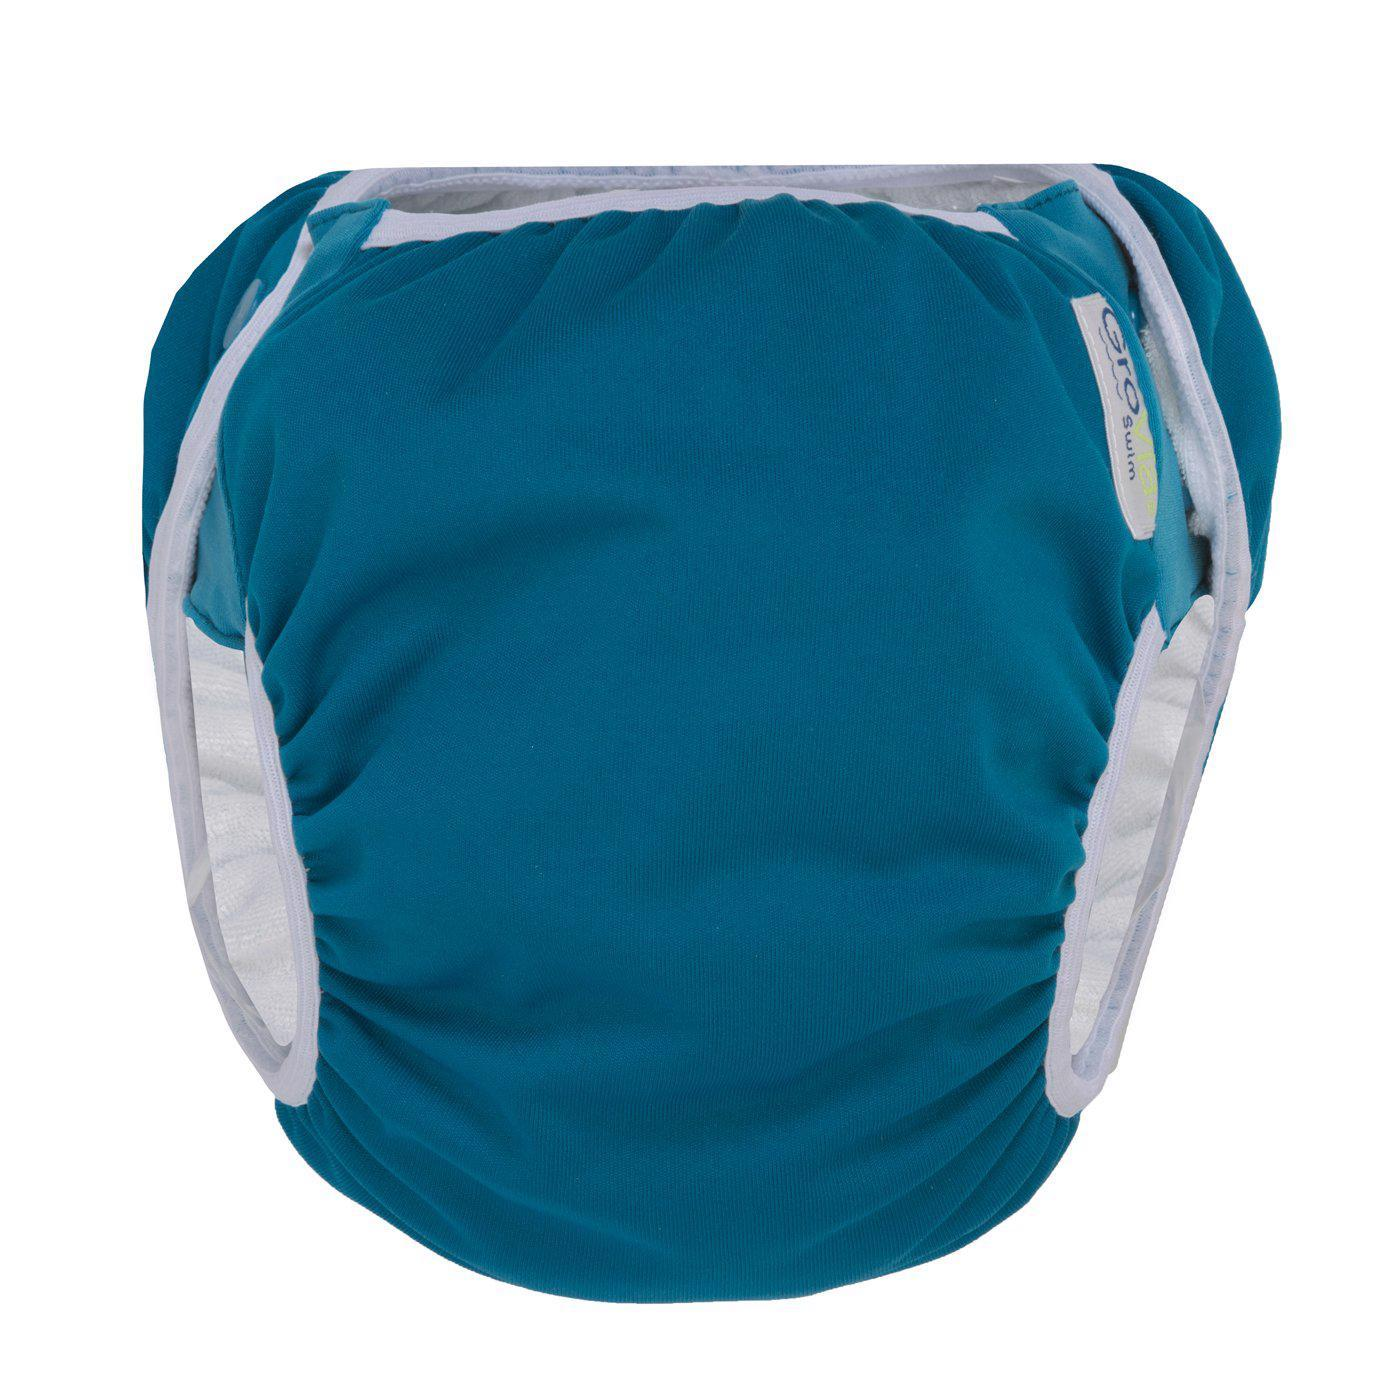 Swim Diaper - Abalone